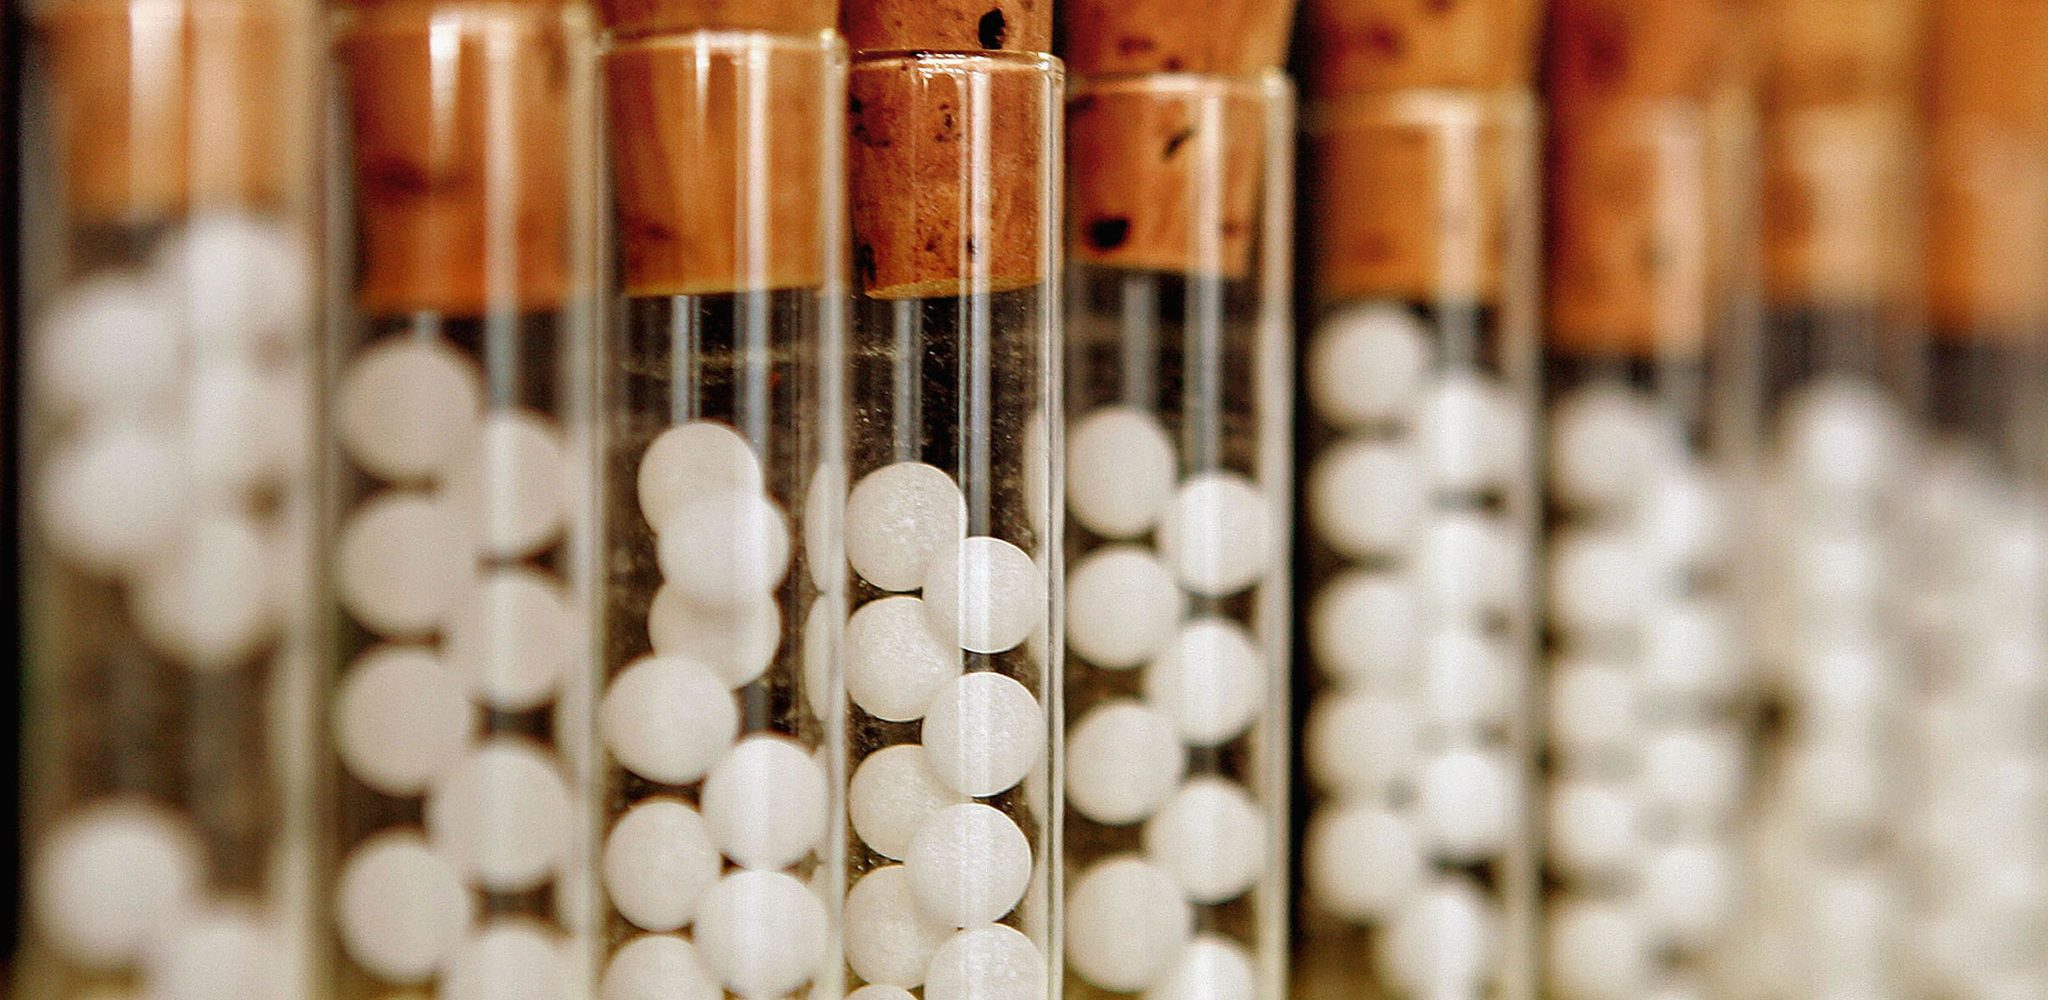 homeopathy-getty